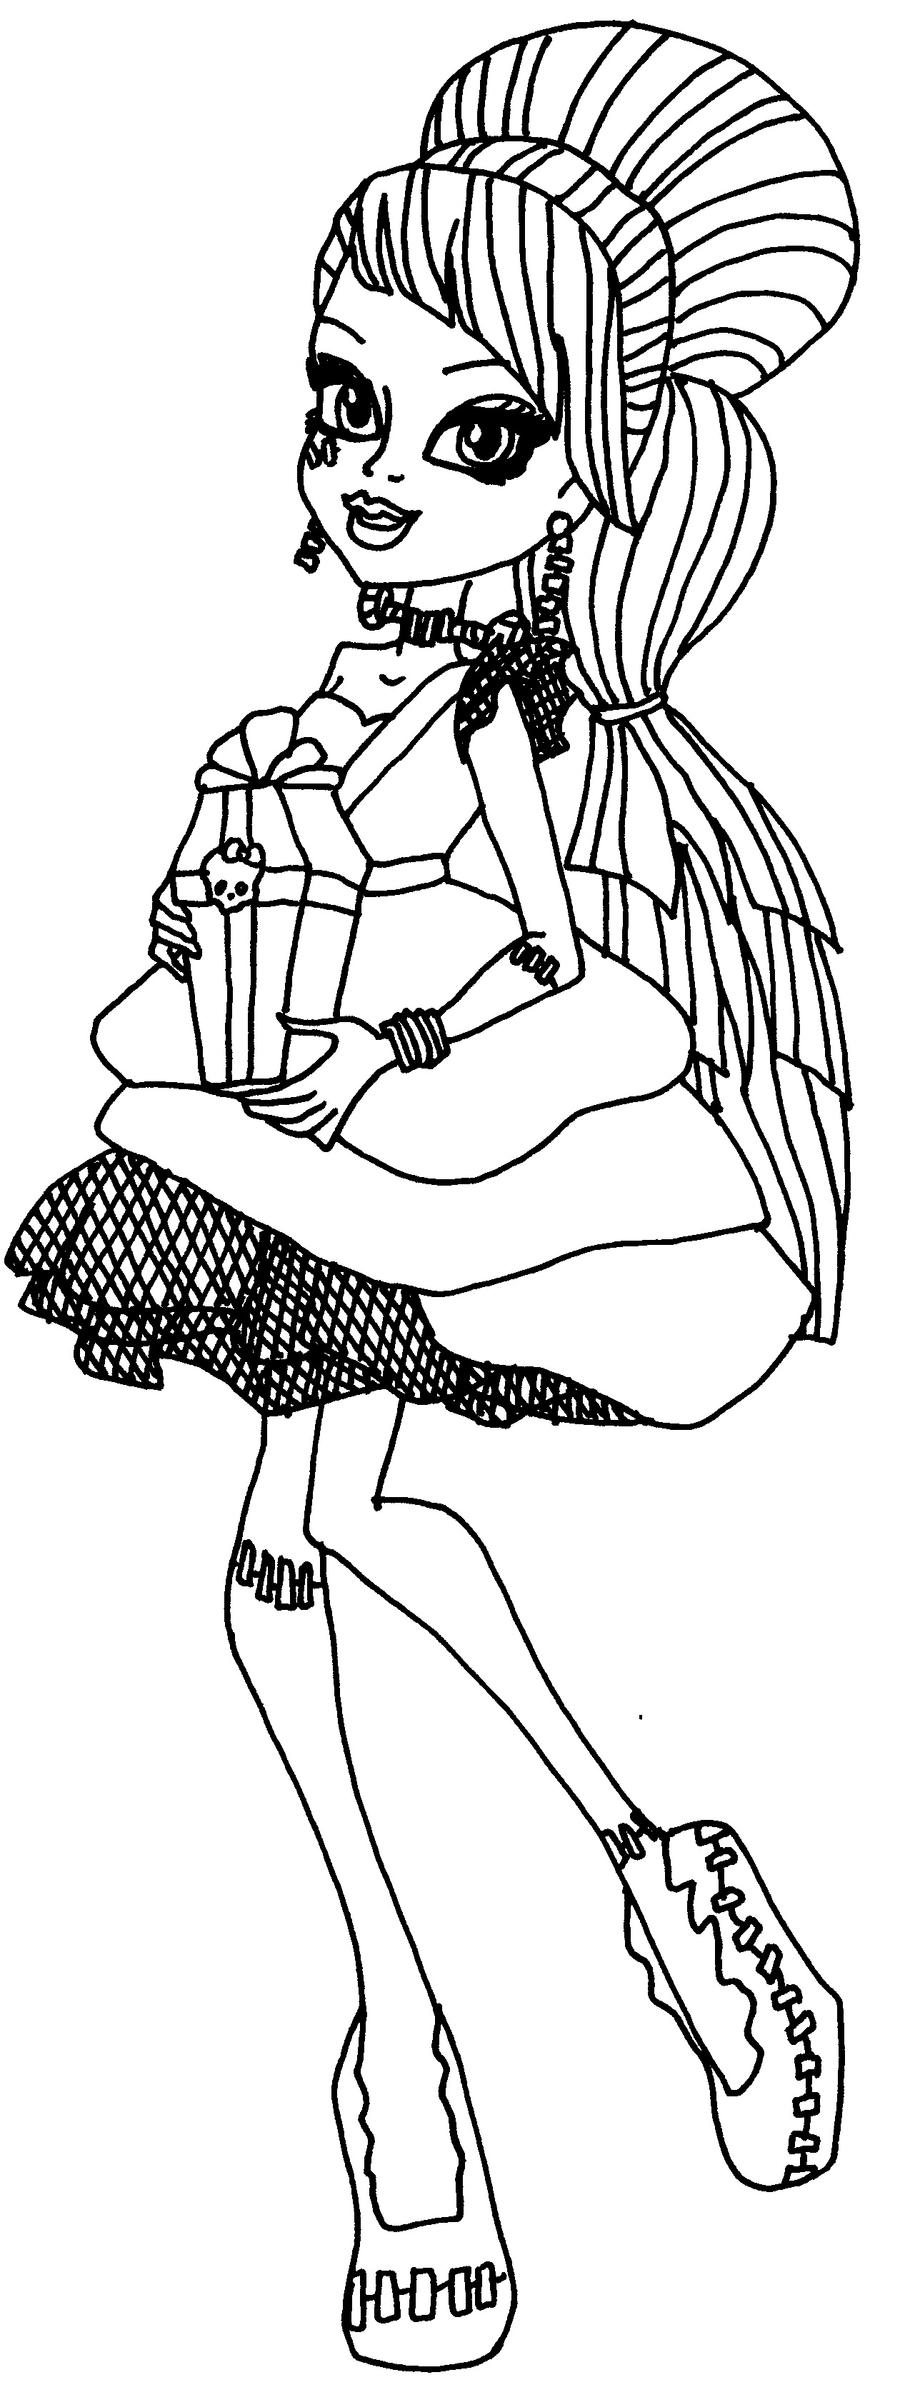 Monster High Draculaura Ausmalbilder : Monster High Draculaura Sweet 1600 Coloring Pages Coloring Page